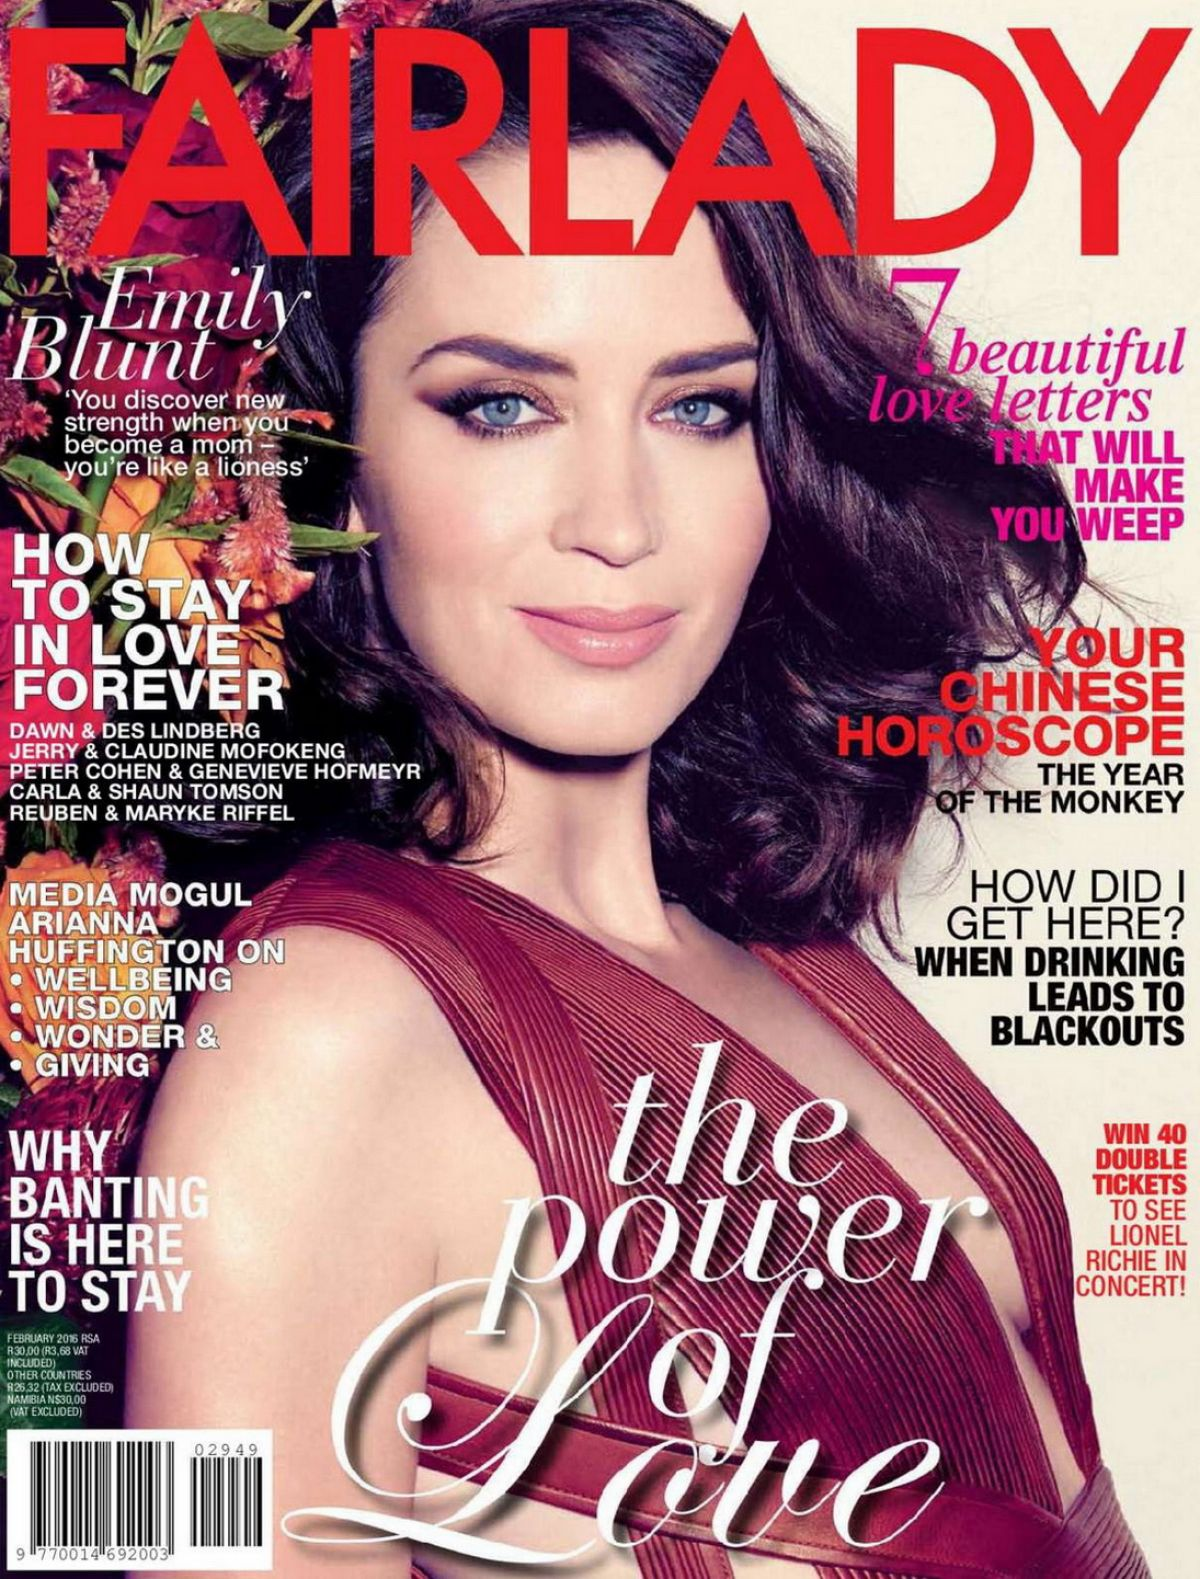 EMILY BLUNT in Fairlady Magazine, February 2016 Issue